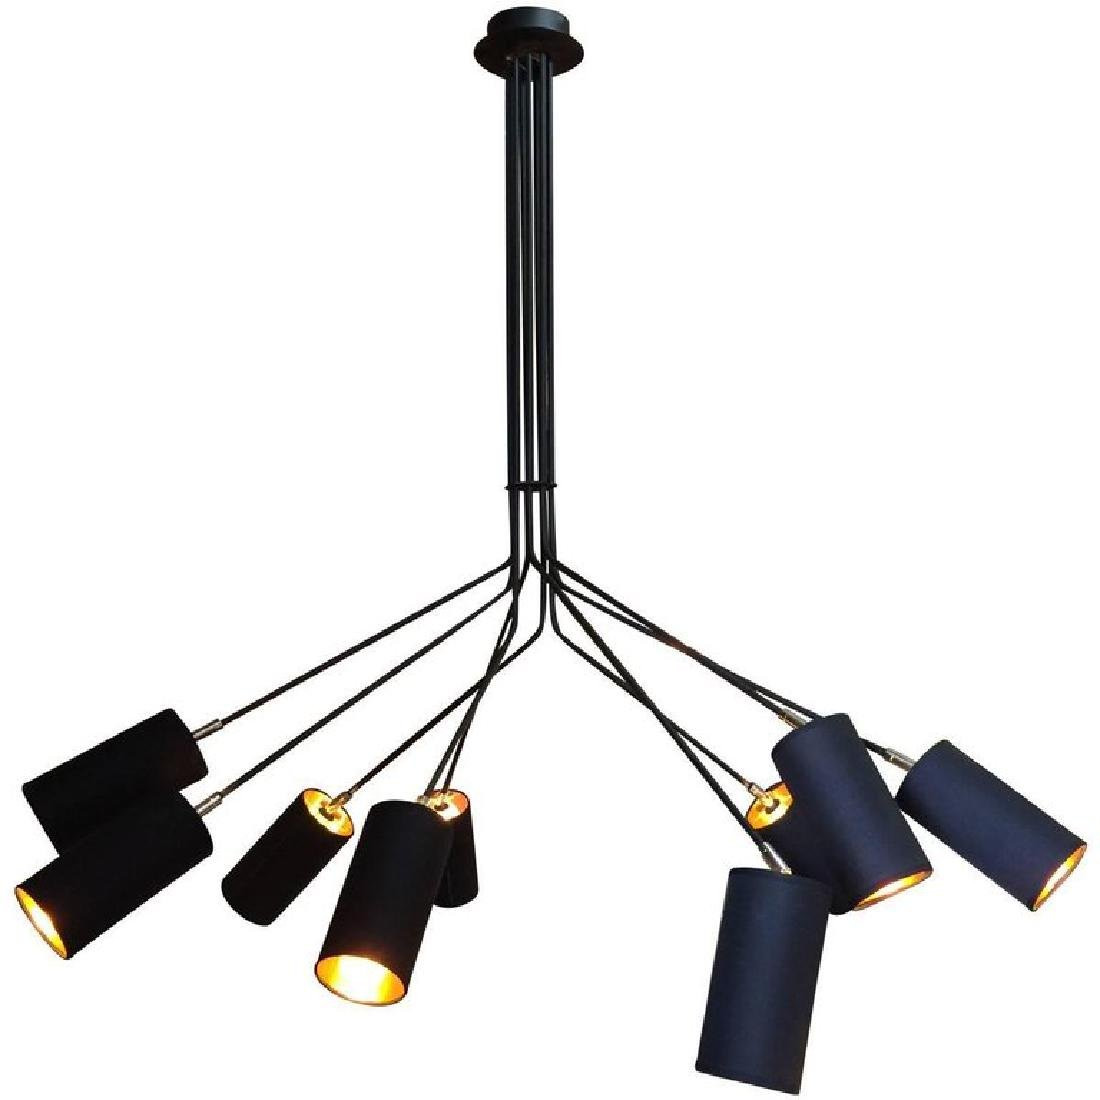 Modern Enameled and Chromed Metal Nine-Arm Chandelier